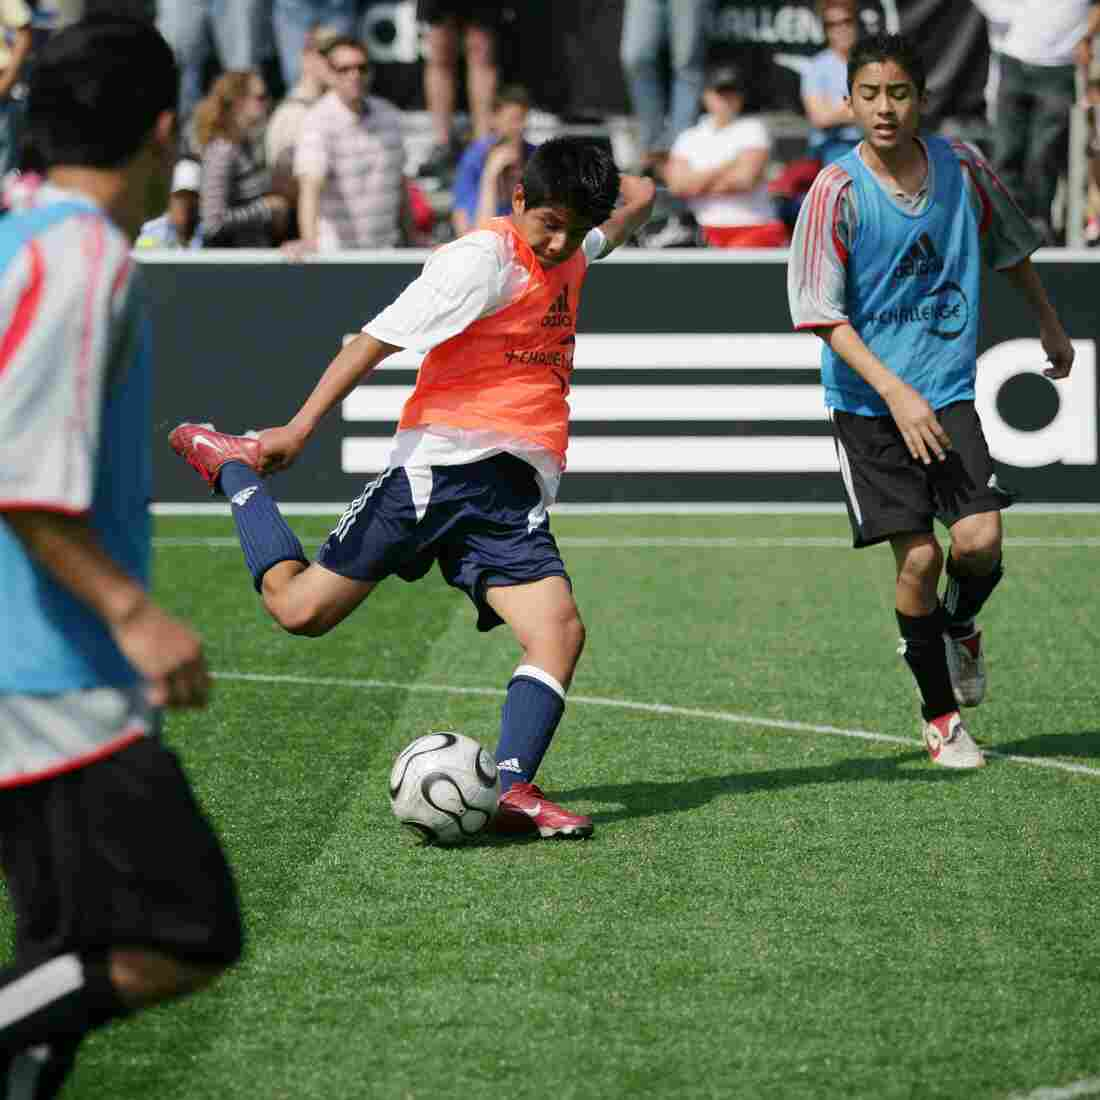 A West Coast team player kicks the ball during a match at the Adidas Challenges America's Youth Soccer Stars tournament in Venice, Calif.